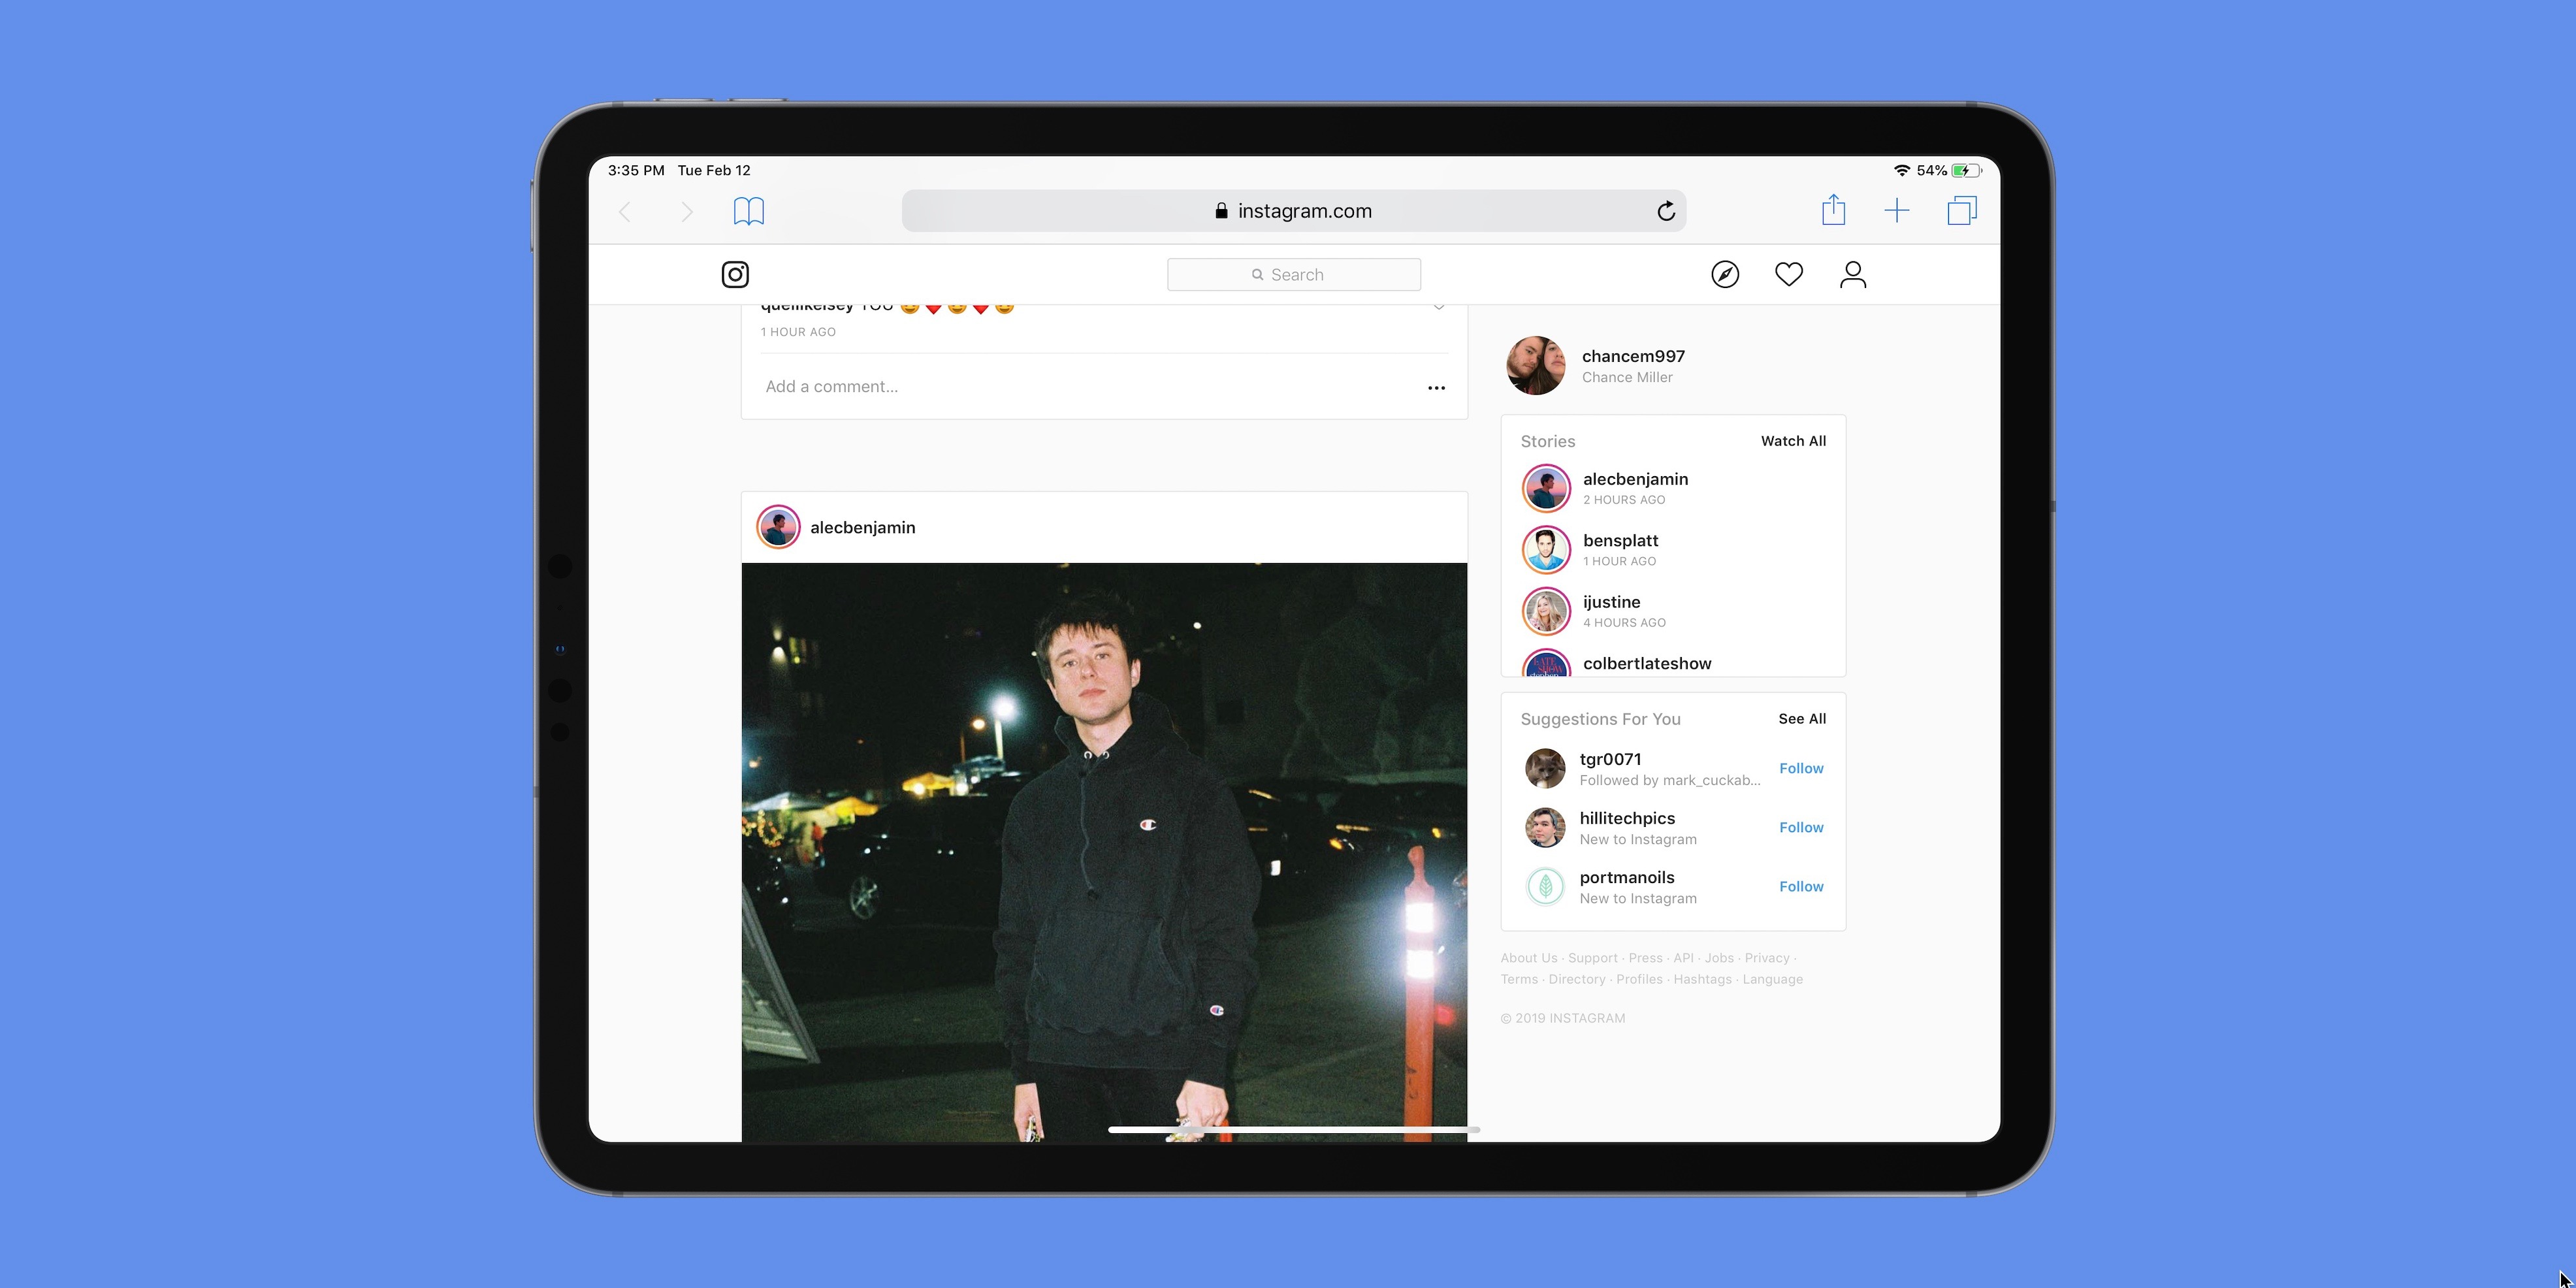 Instagram testing support for Direct messages on the web, including on iPad